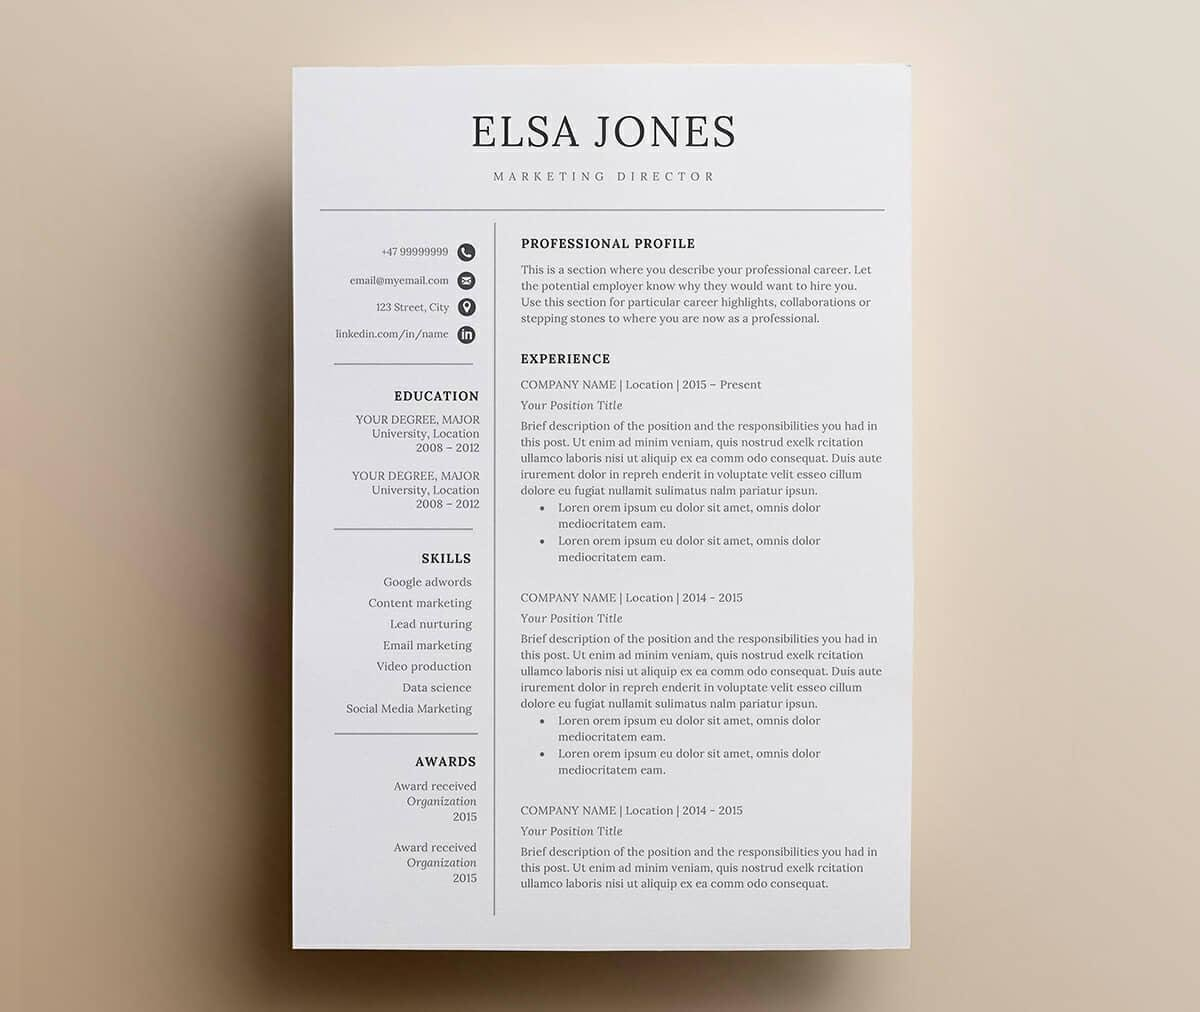 minimalistic and simple resume layout